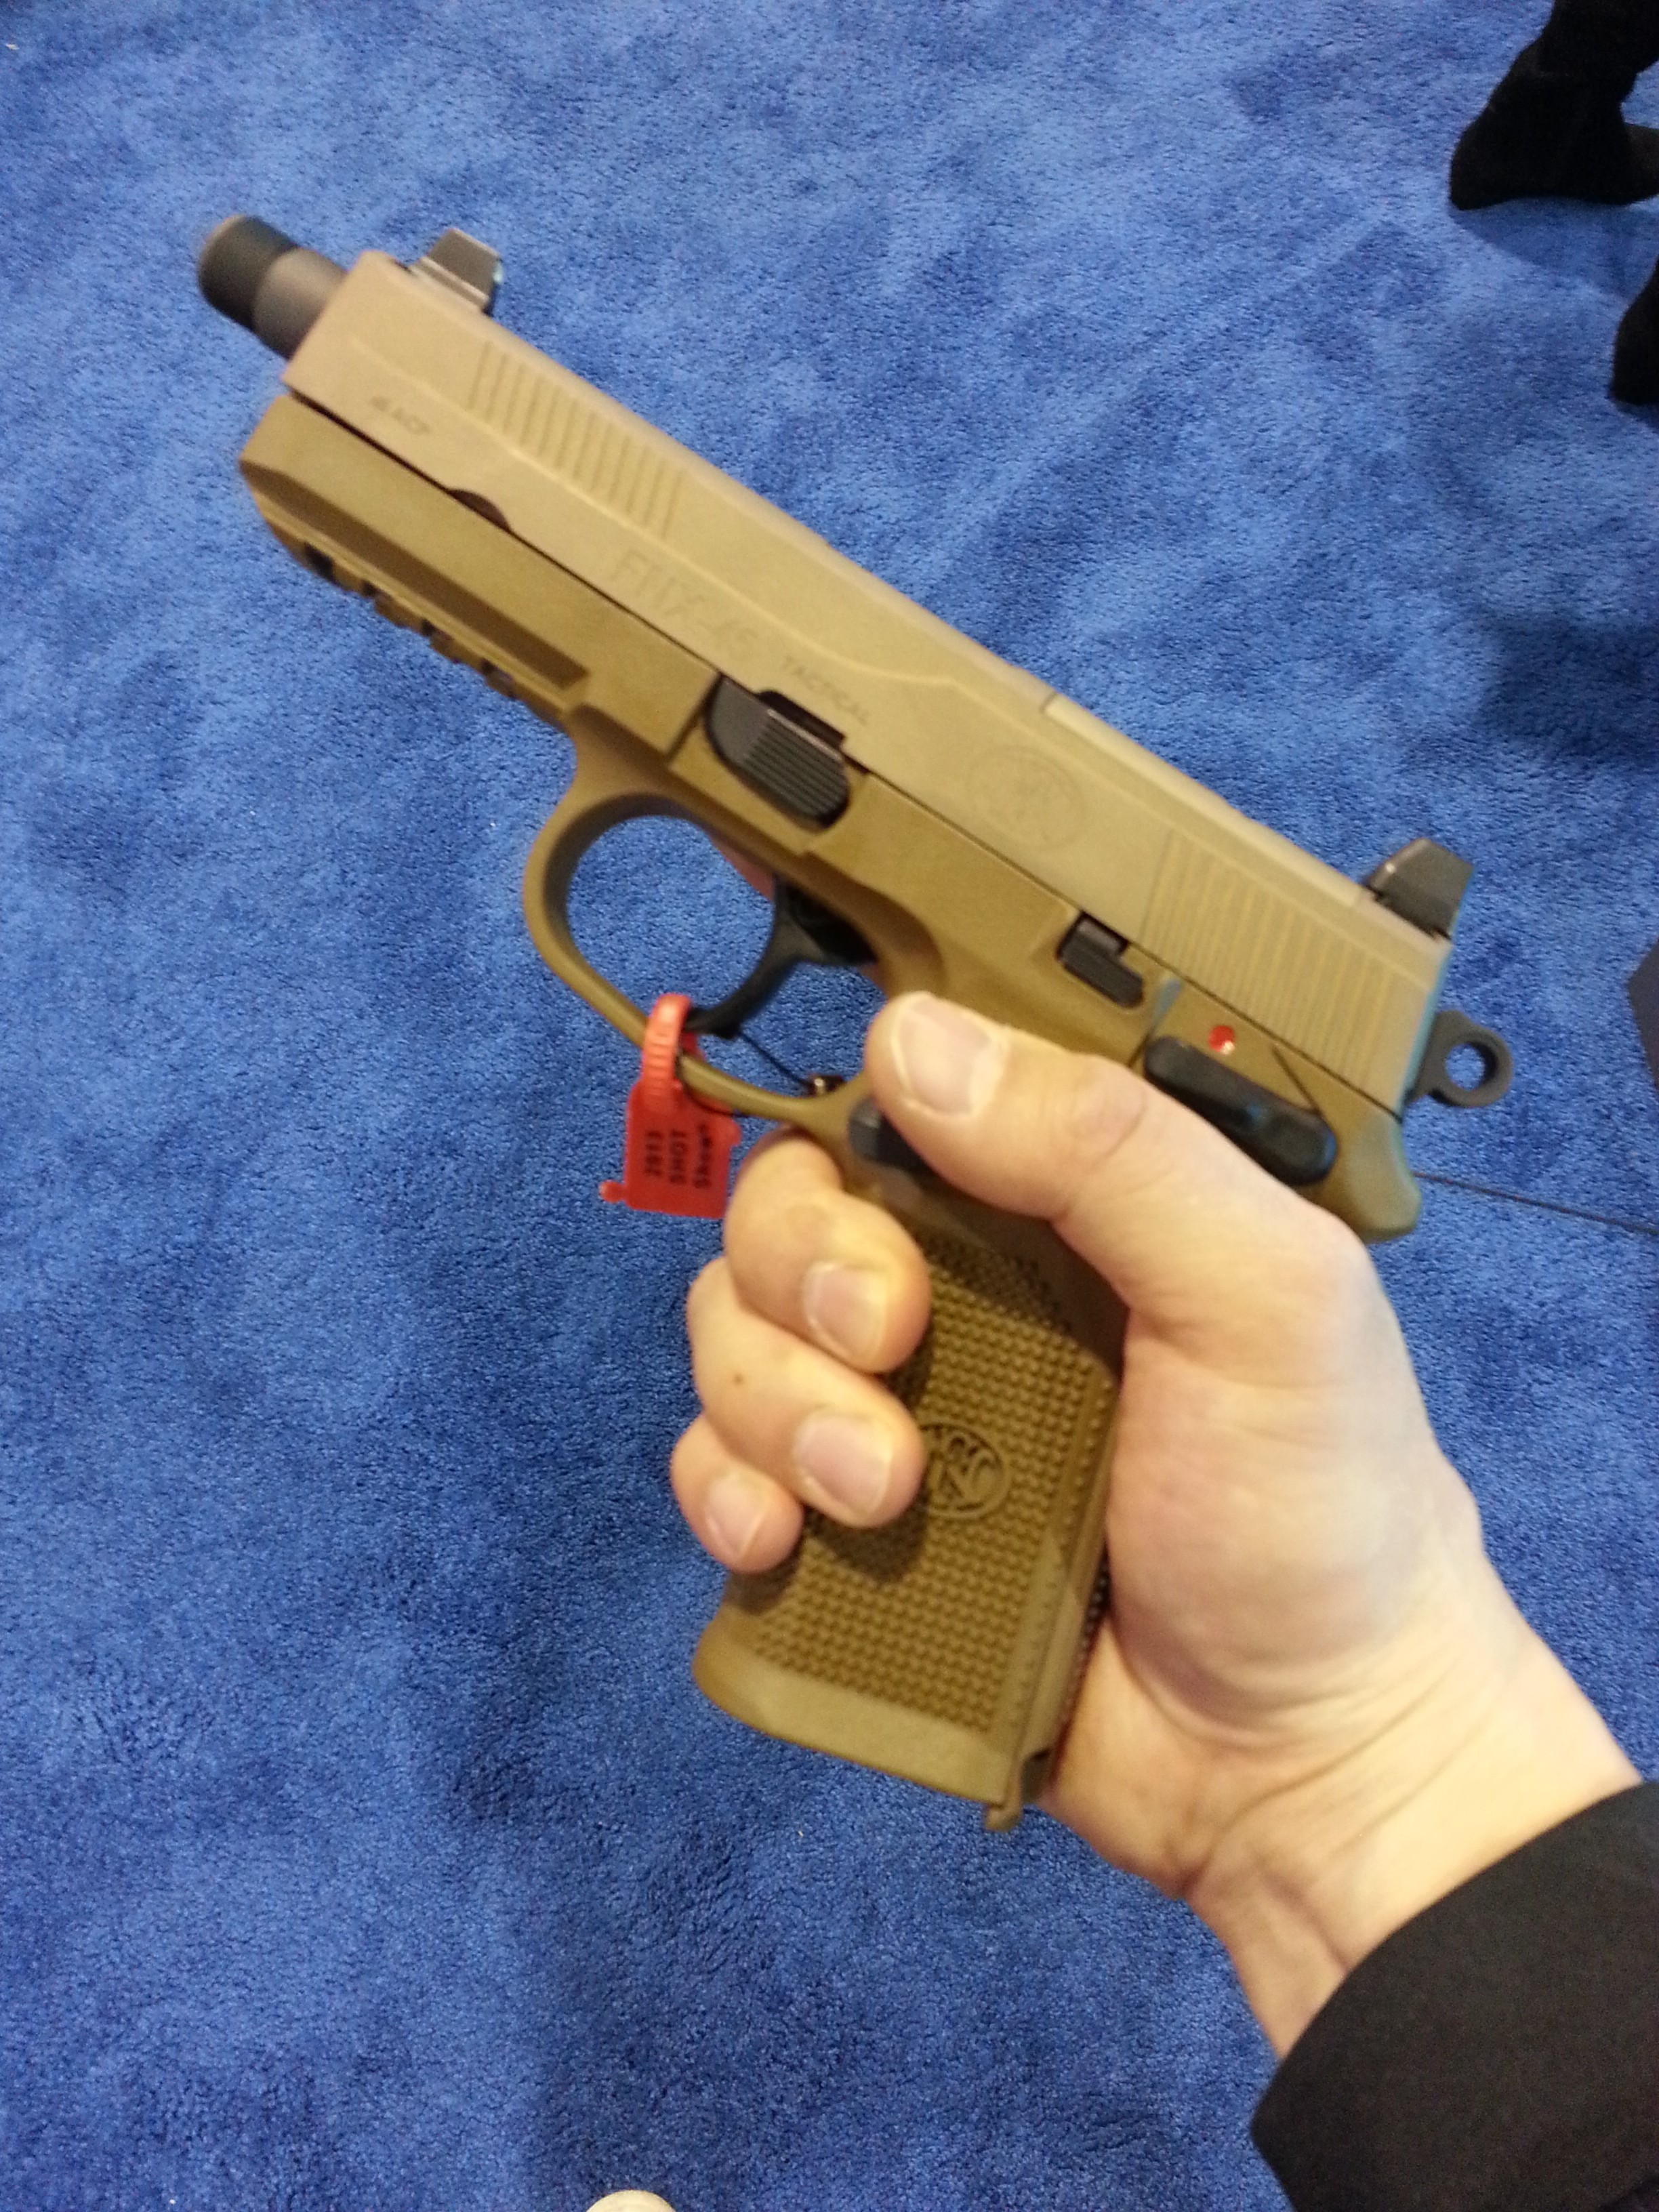 45 Pictures Of Bohemian Lifestyle: FNH's New FNS-9, FNS-40, And FNX-45 Pistols, And The A5X